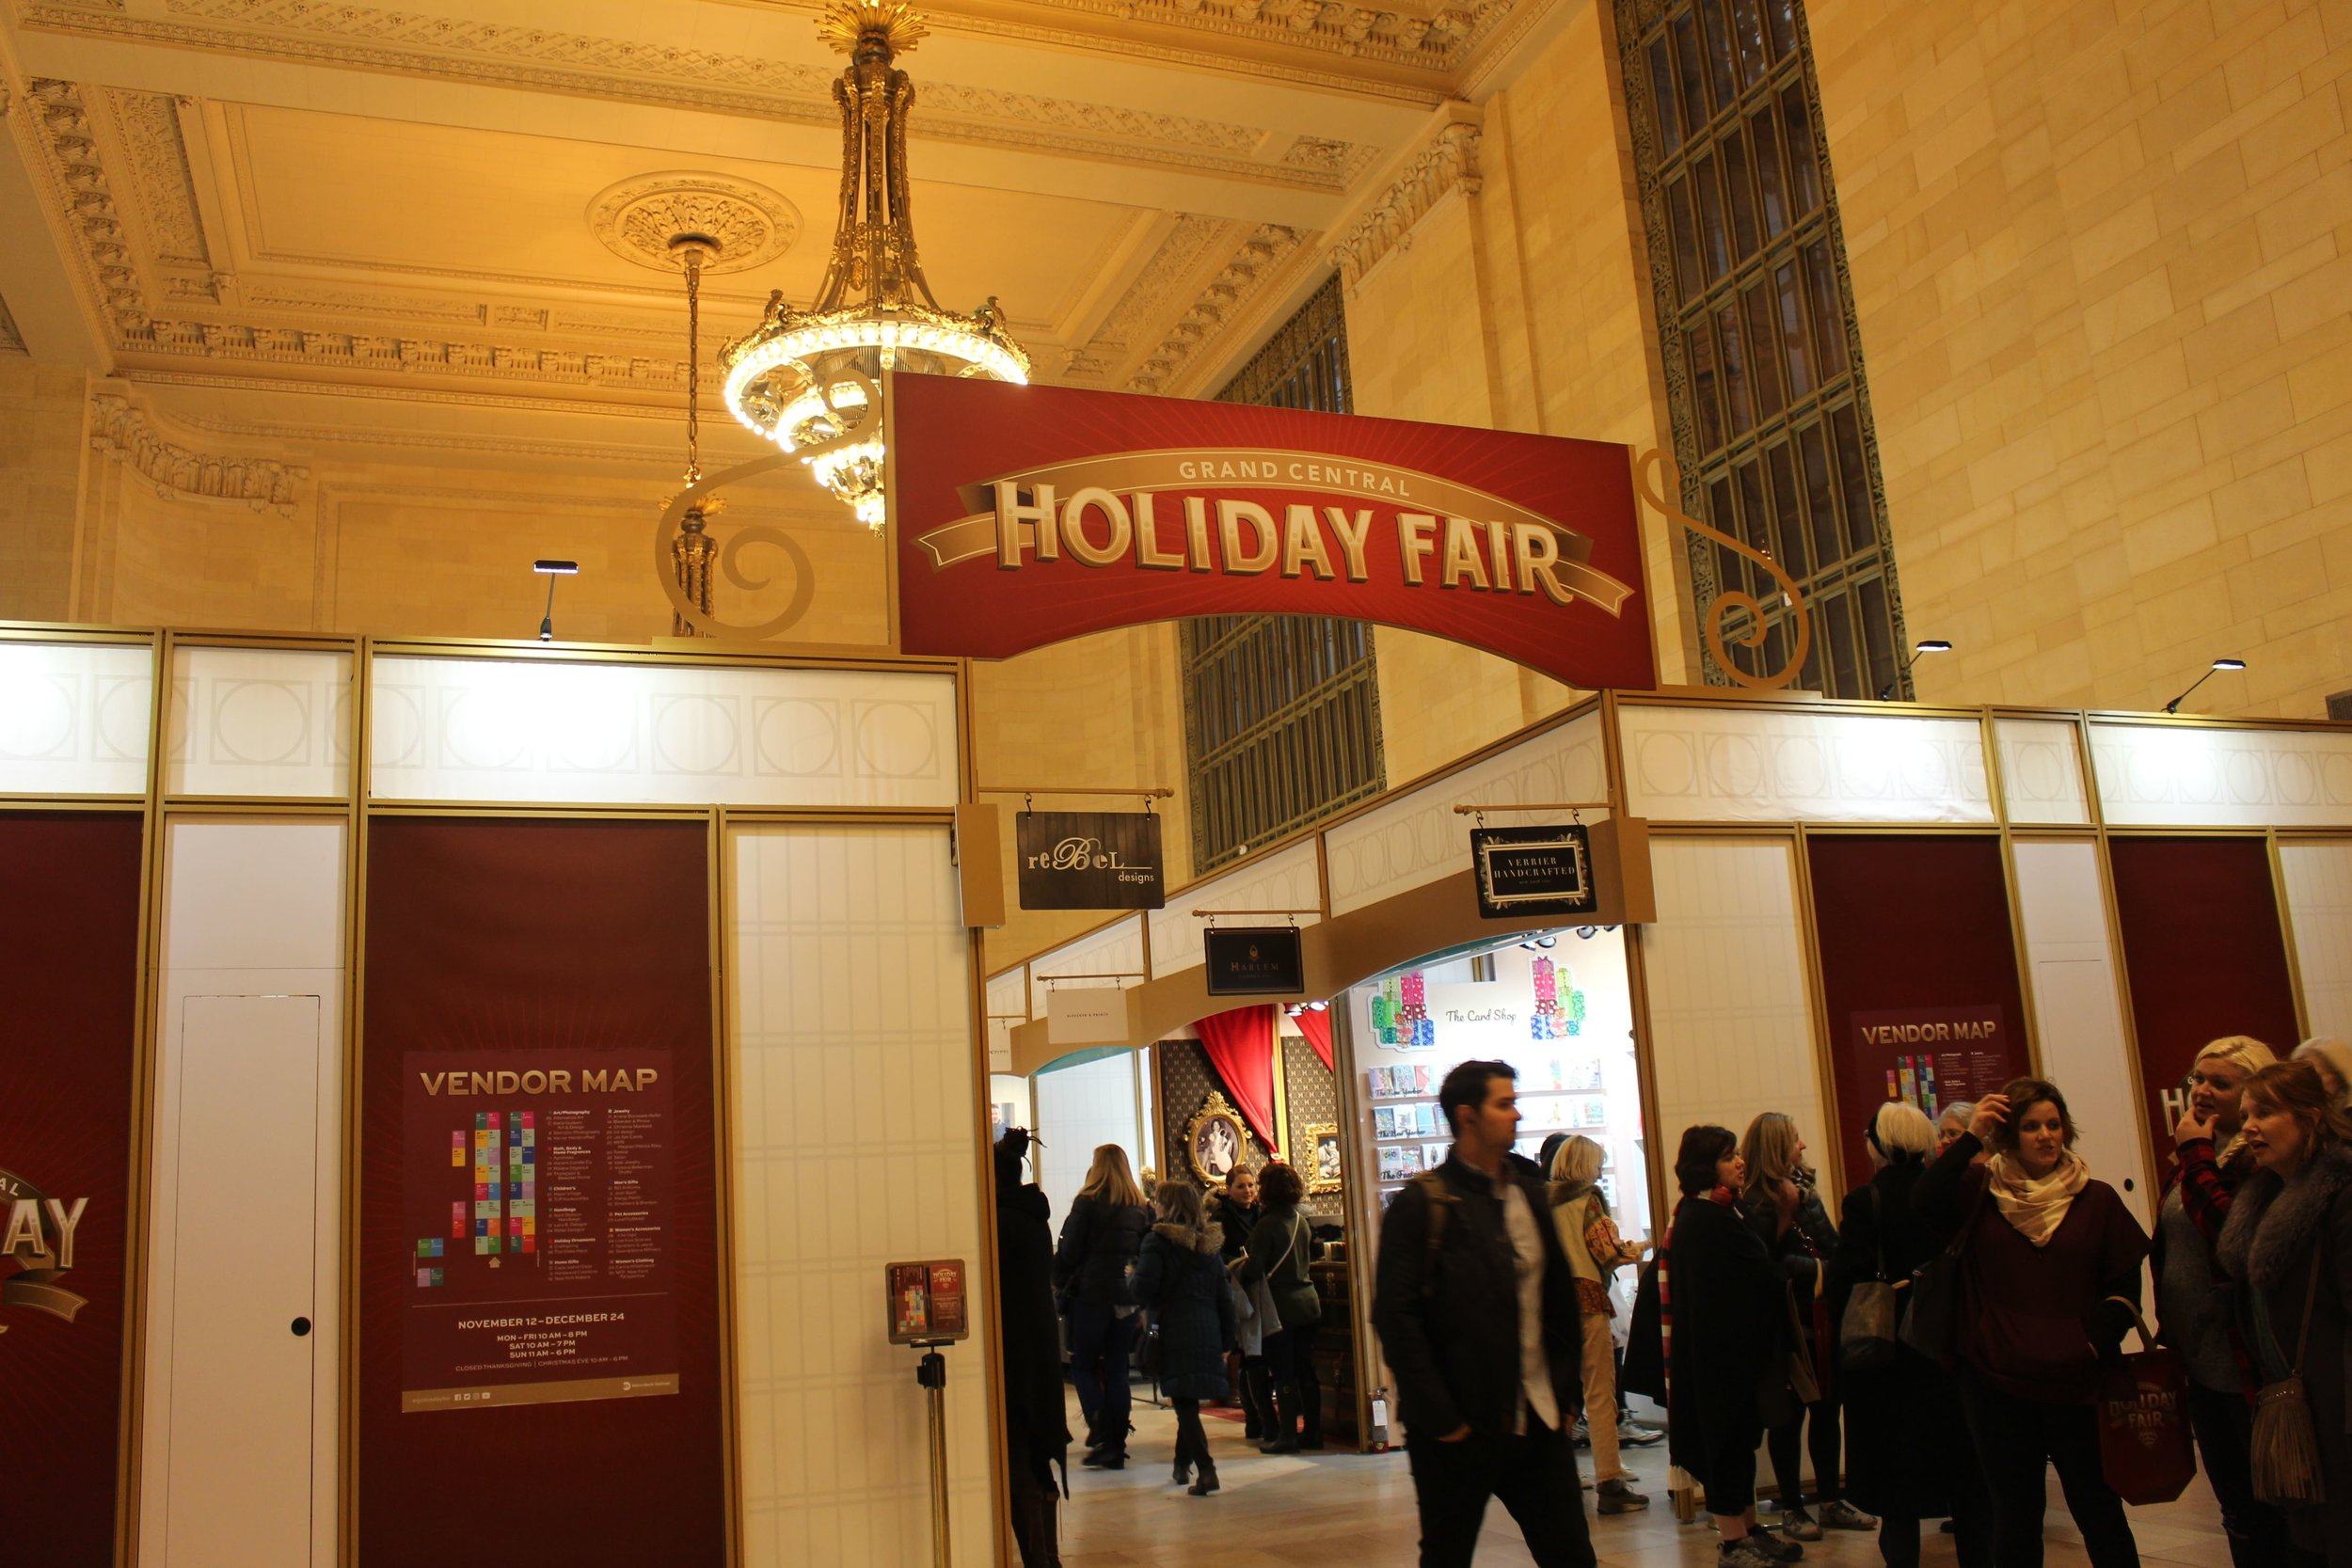 GRAND CENTRAL HOLIDAY FAIR - B FLORAL